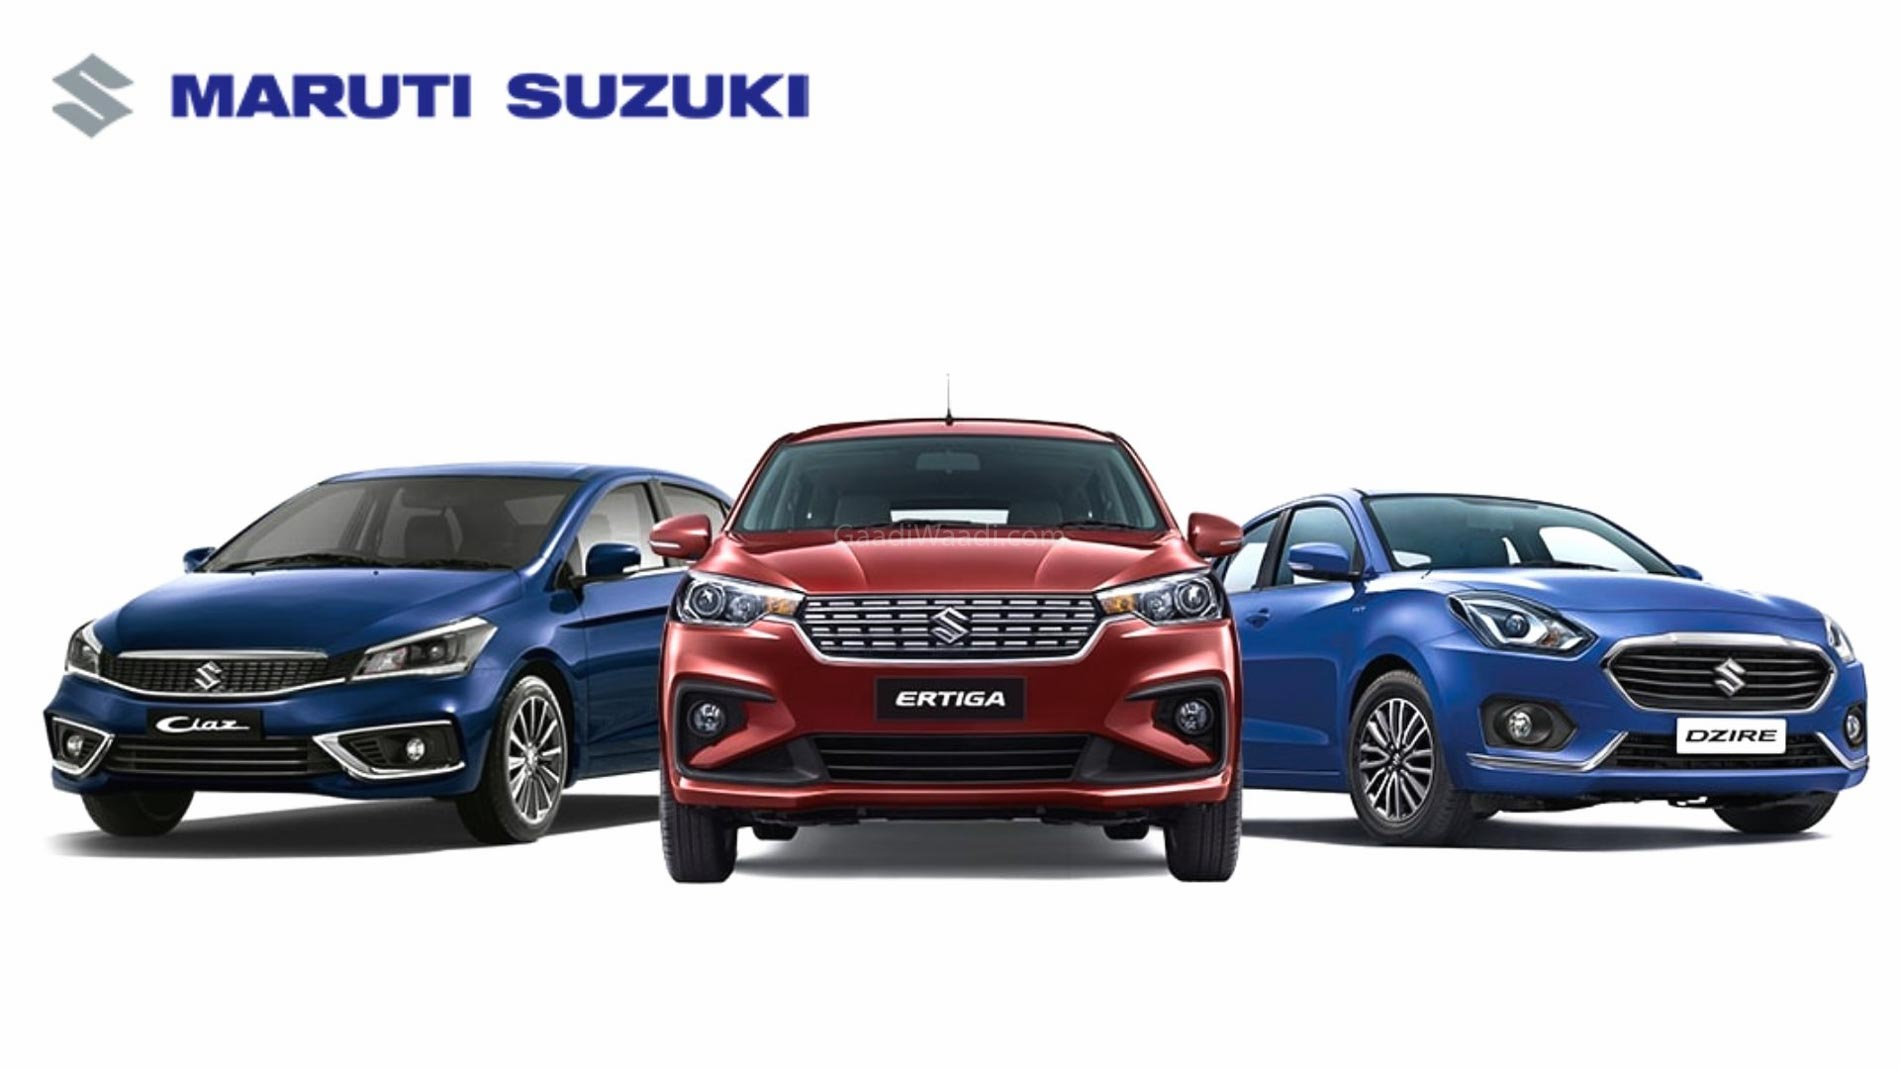 Maruti Suzuki Sold 13,865 Units in May 2020, Sales Down By 89%